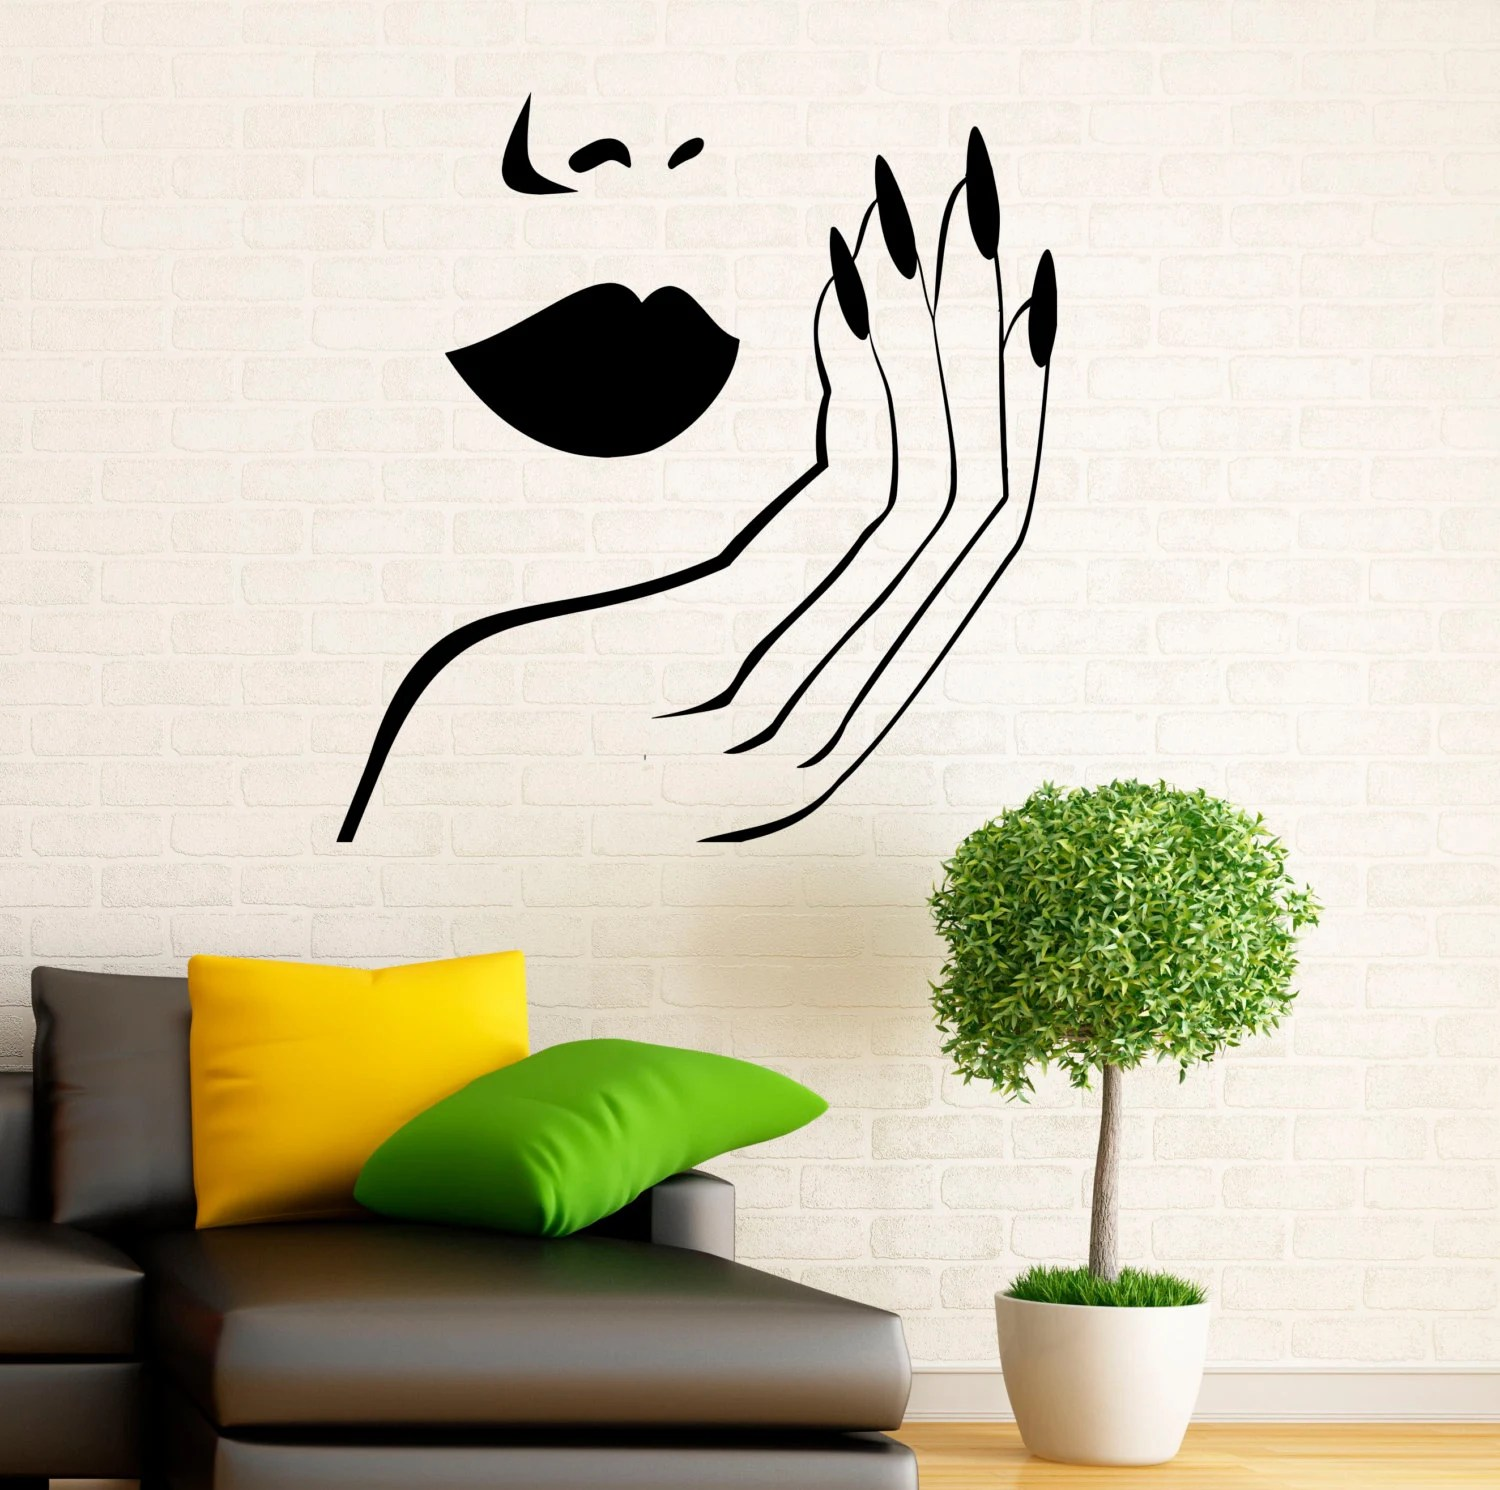 manicure wall decal vinyl stickers